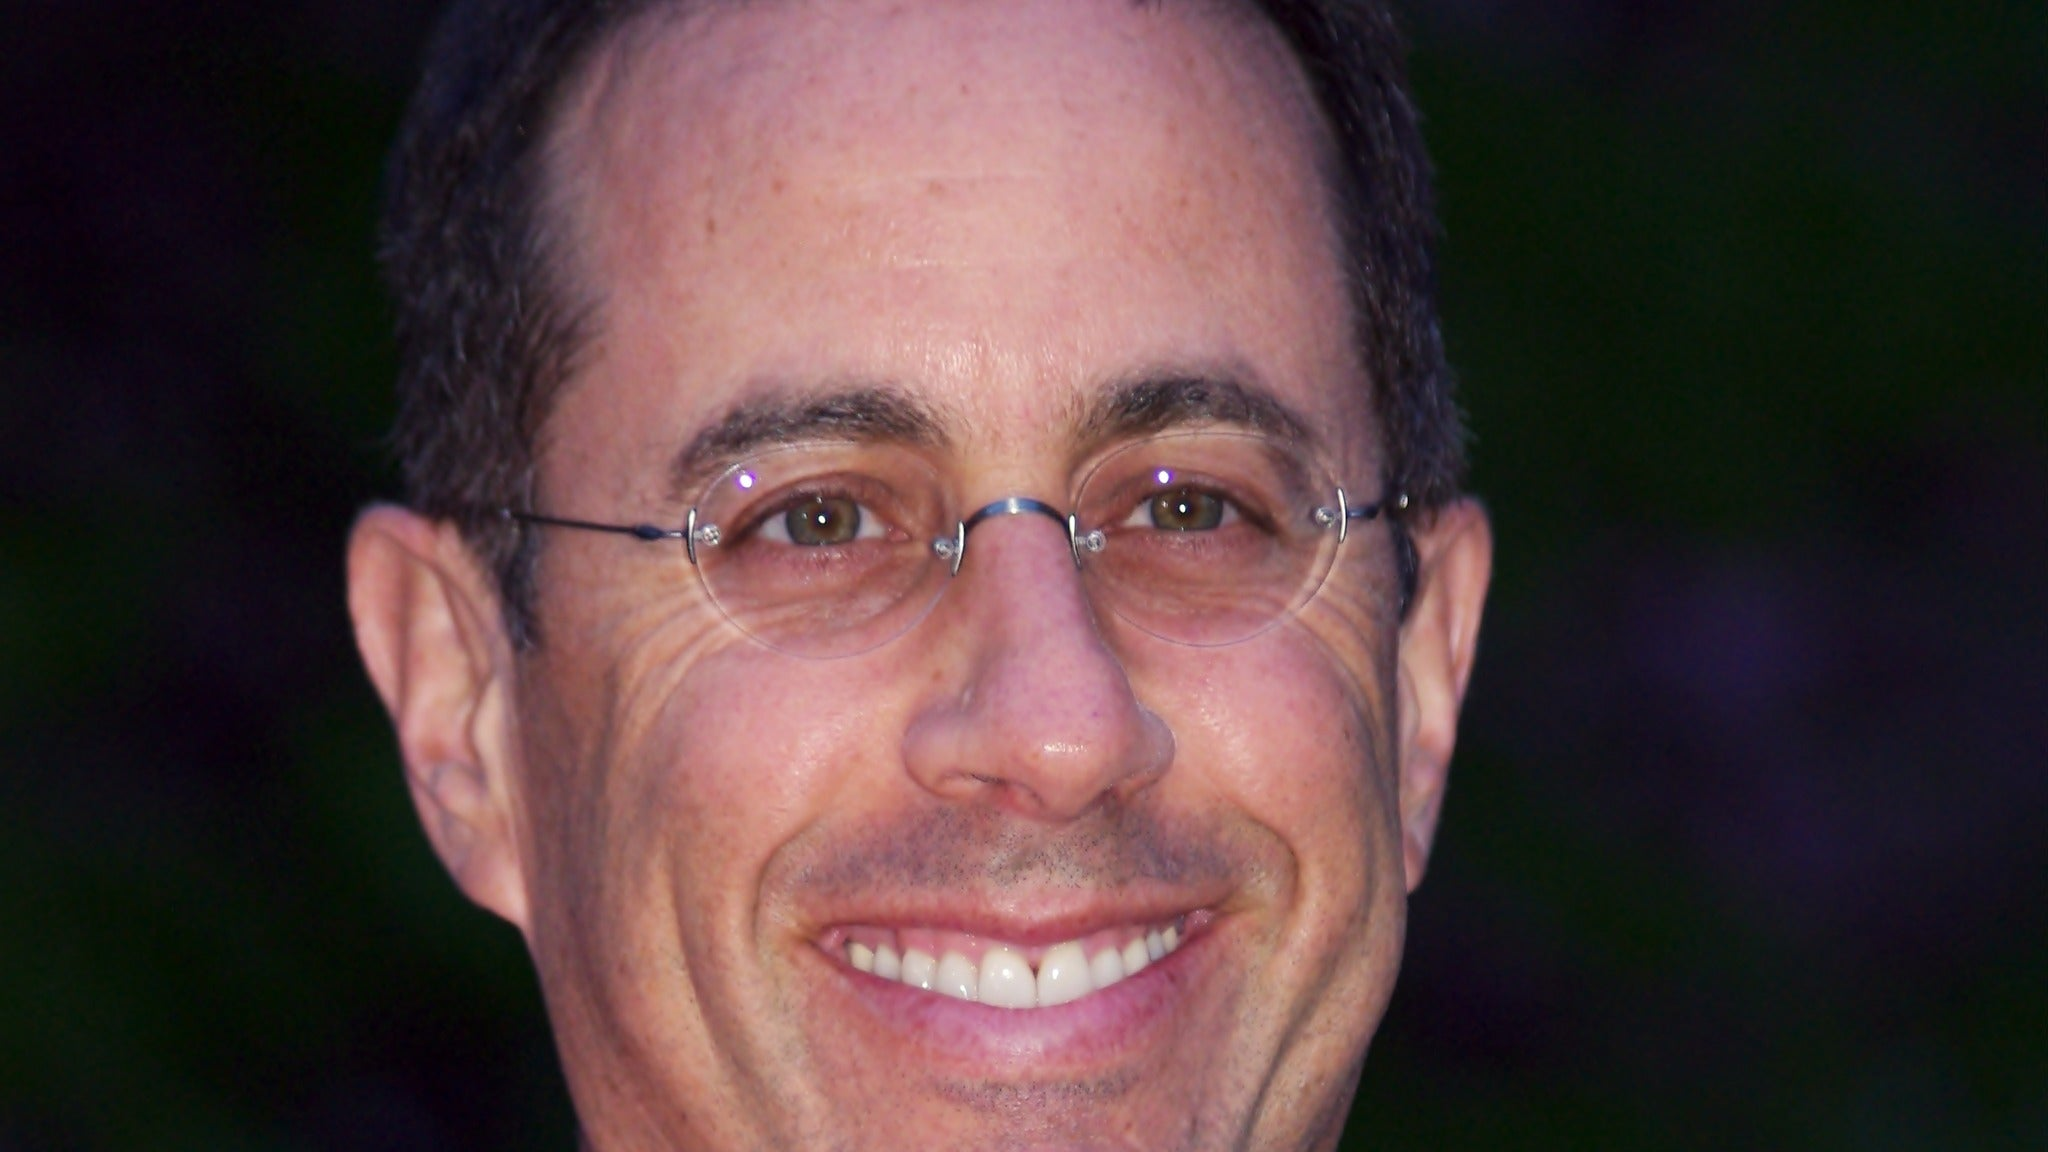 Jerry Seinfeld at Adler Theatre